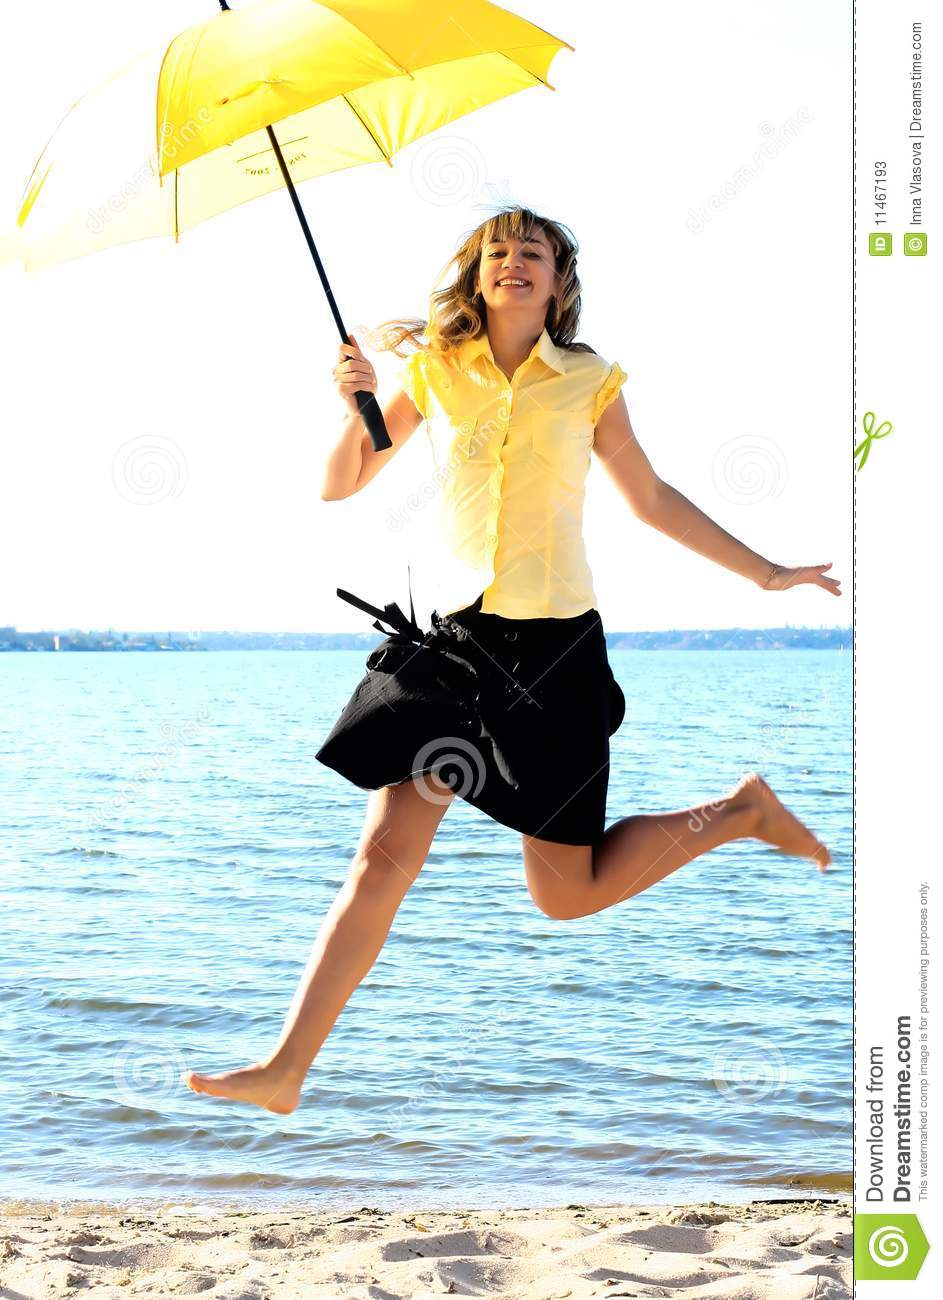 Young Funny Girl Jumping With Umbrella